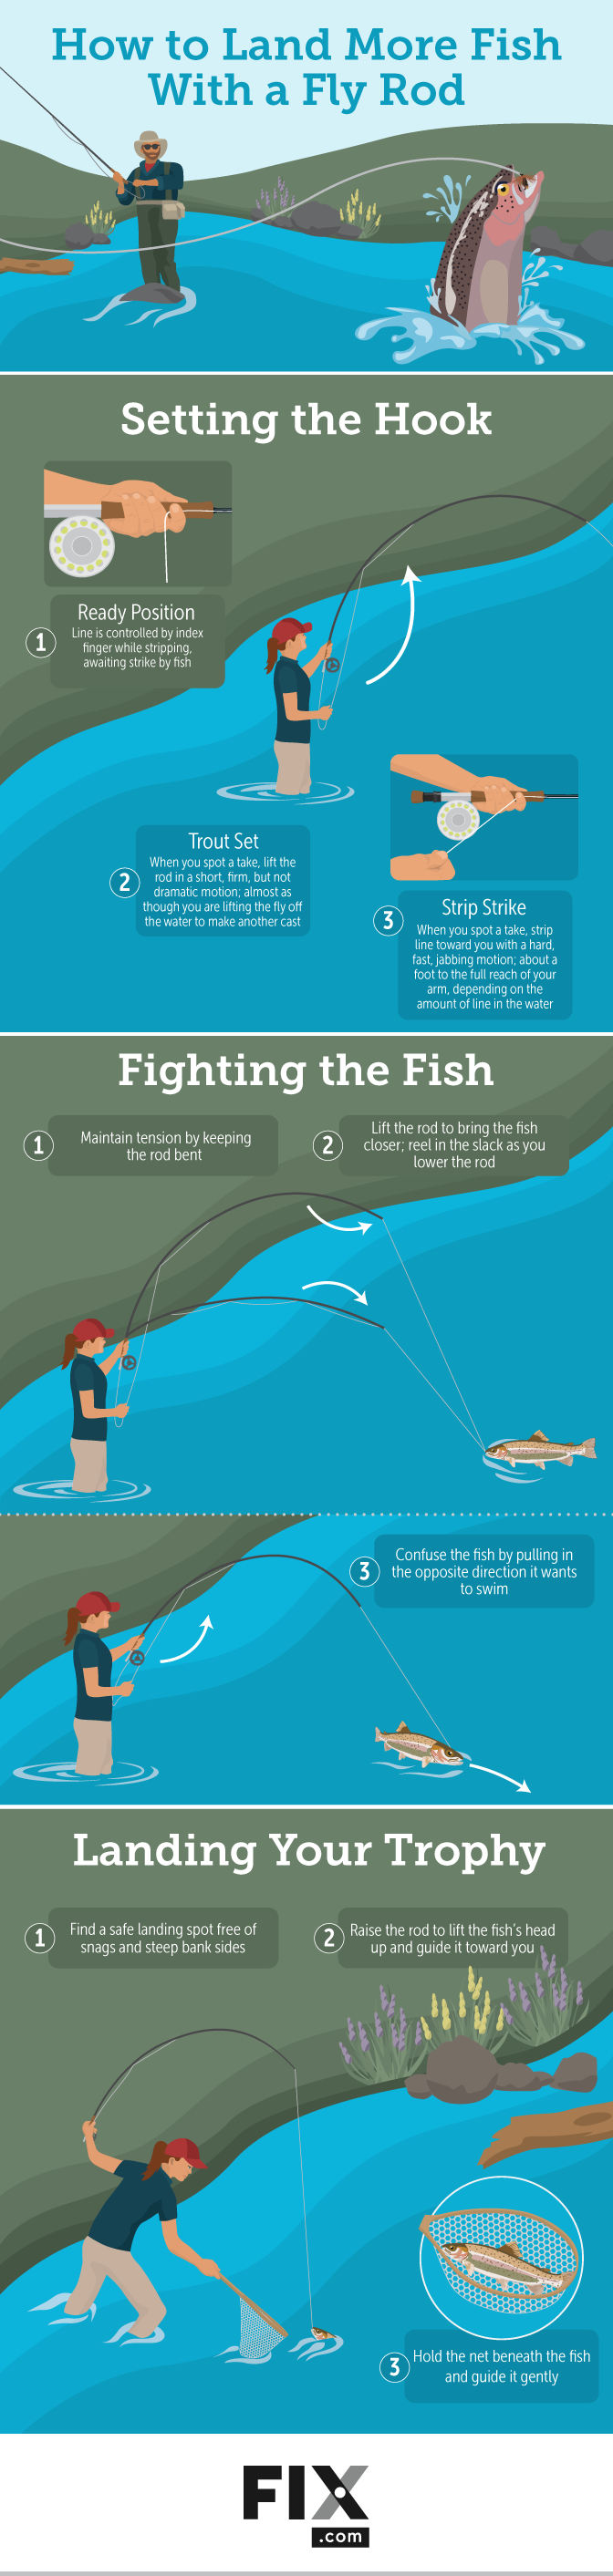 How to Land More Fish With a Fly Rod